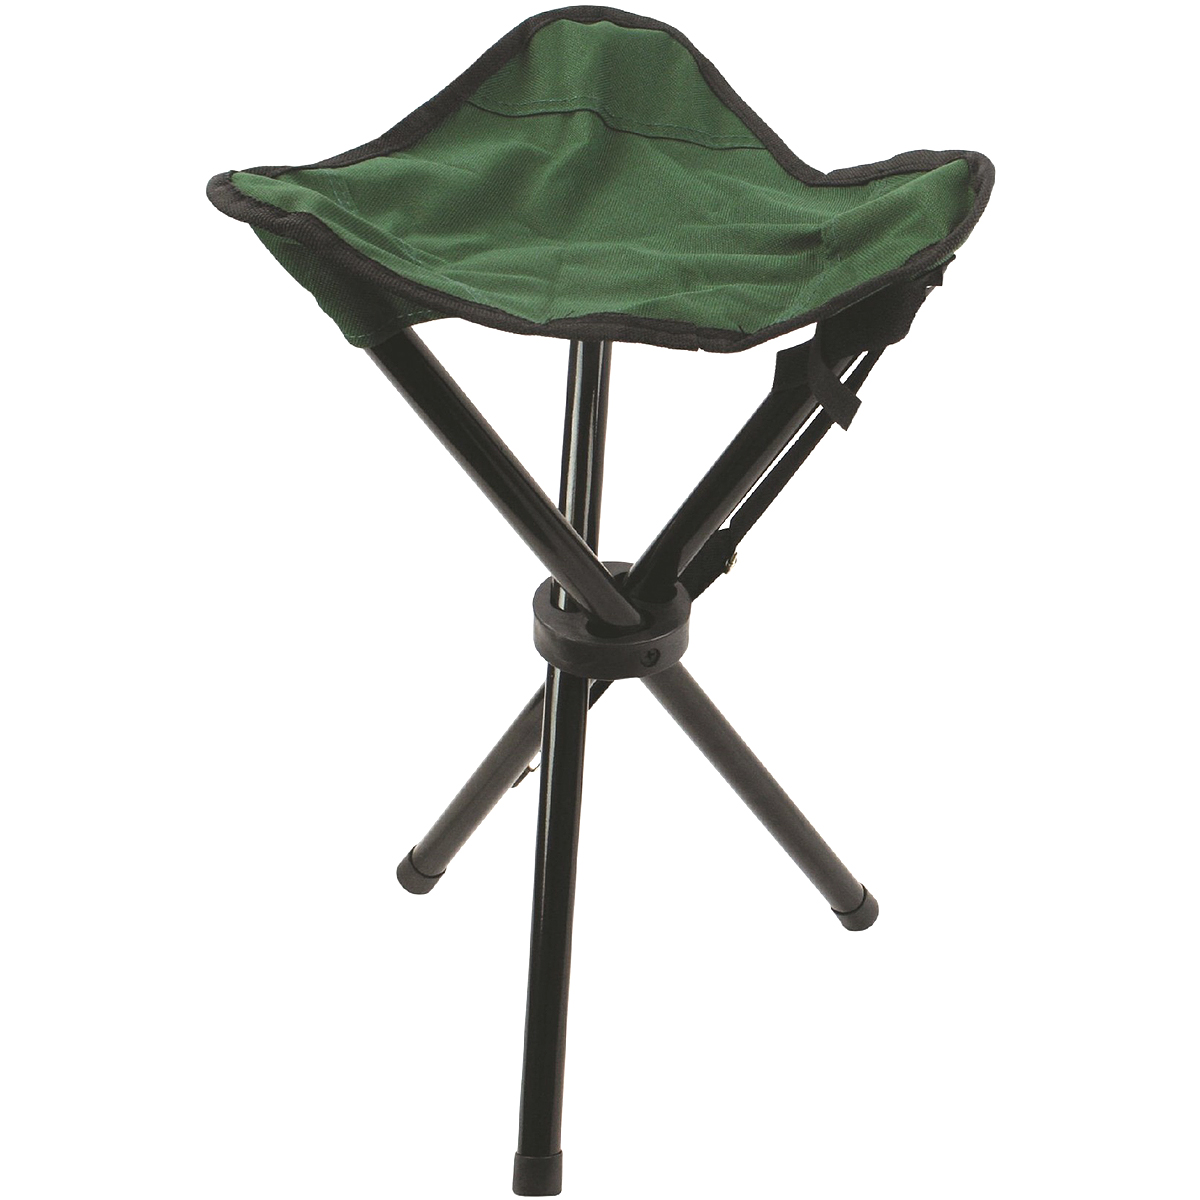 Highlander Folding 3 Leg Steel Tripod Stool Camping